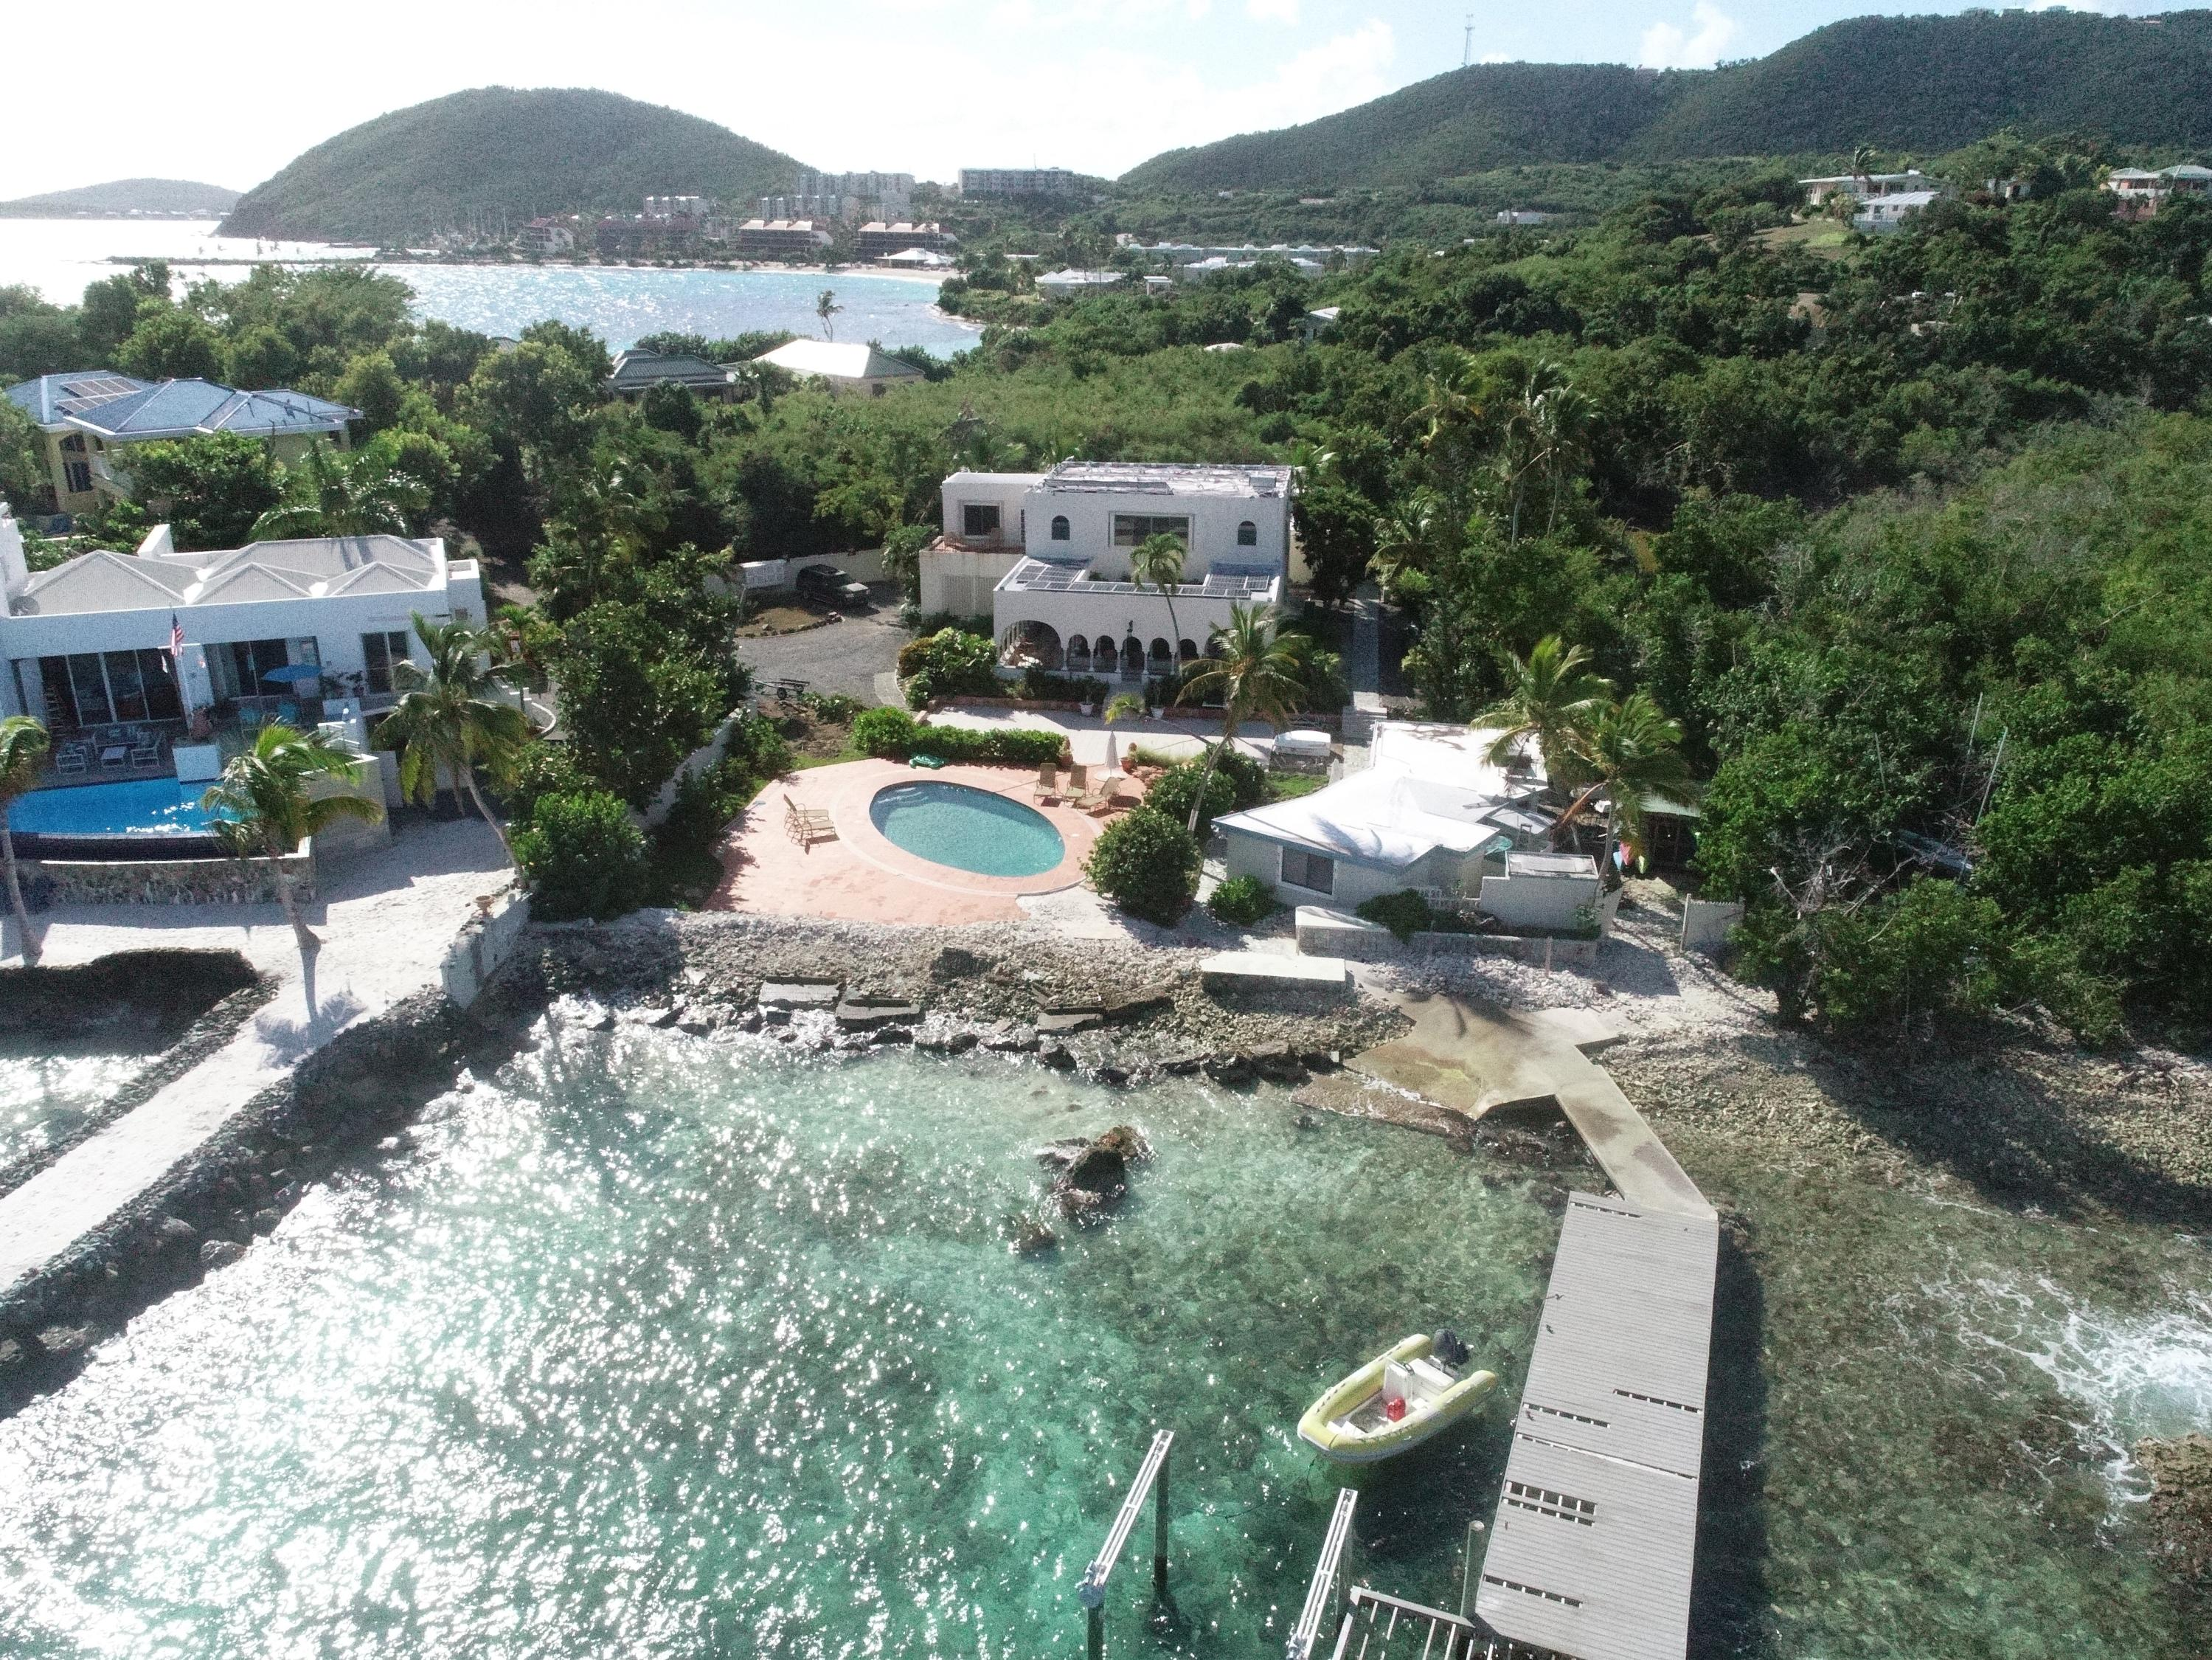 Multi-Family Home for Sale at 12D-2 Smith Bay EE 12D-2 Smith Bay EE St Thomas, Virgin Islands 00802 United States Virgin Islands